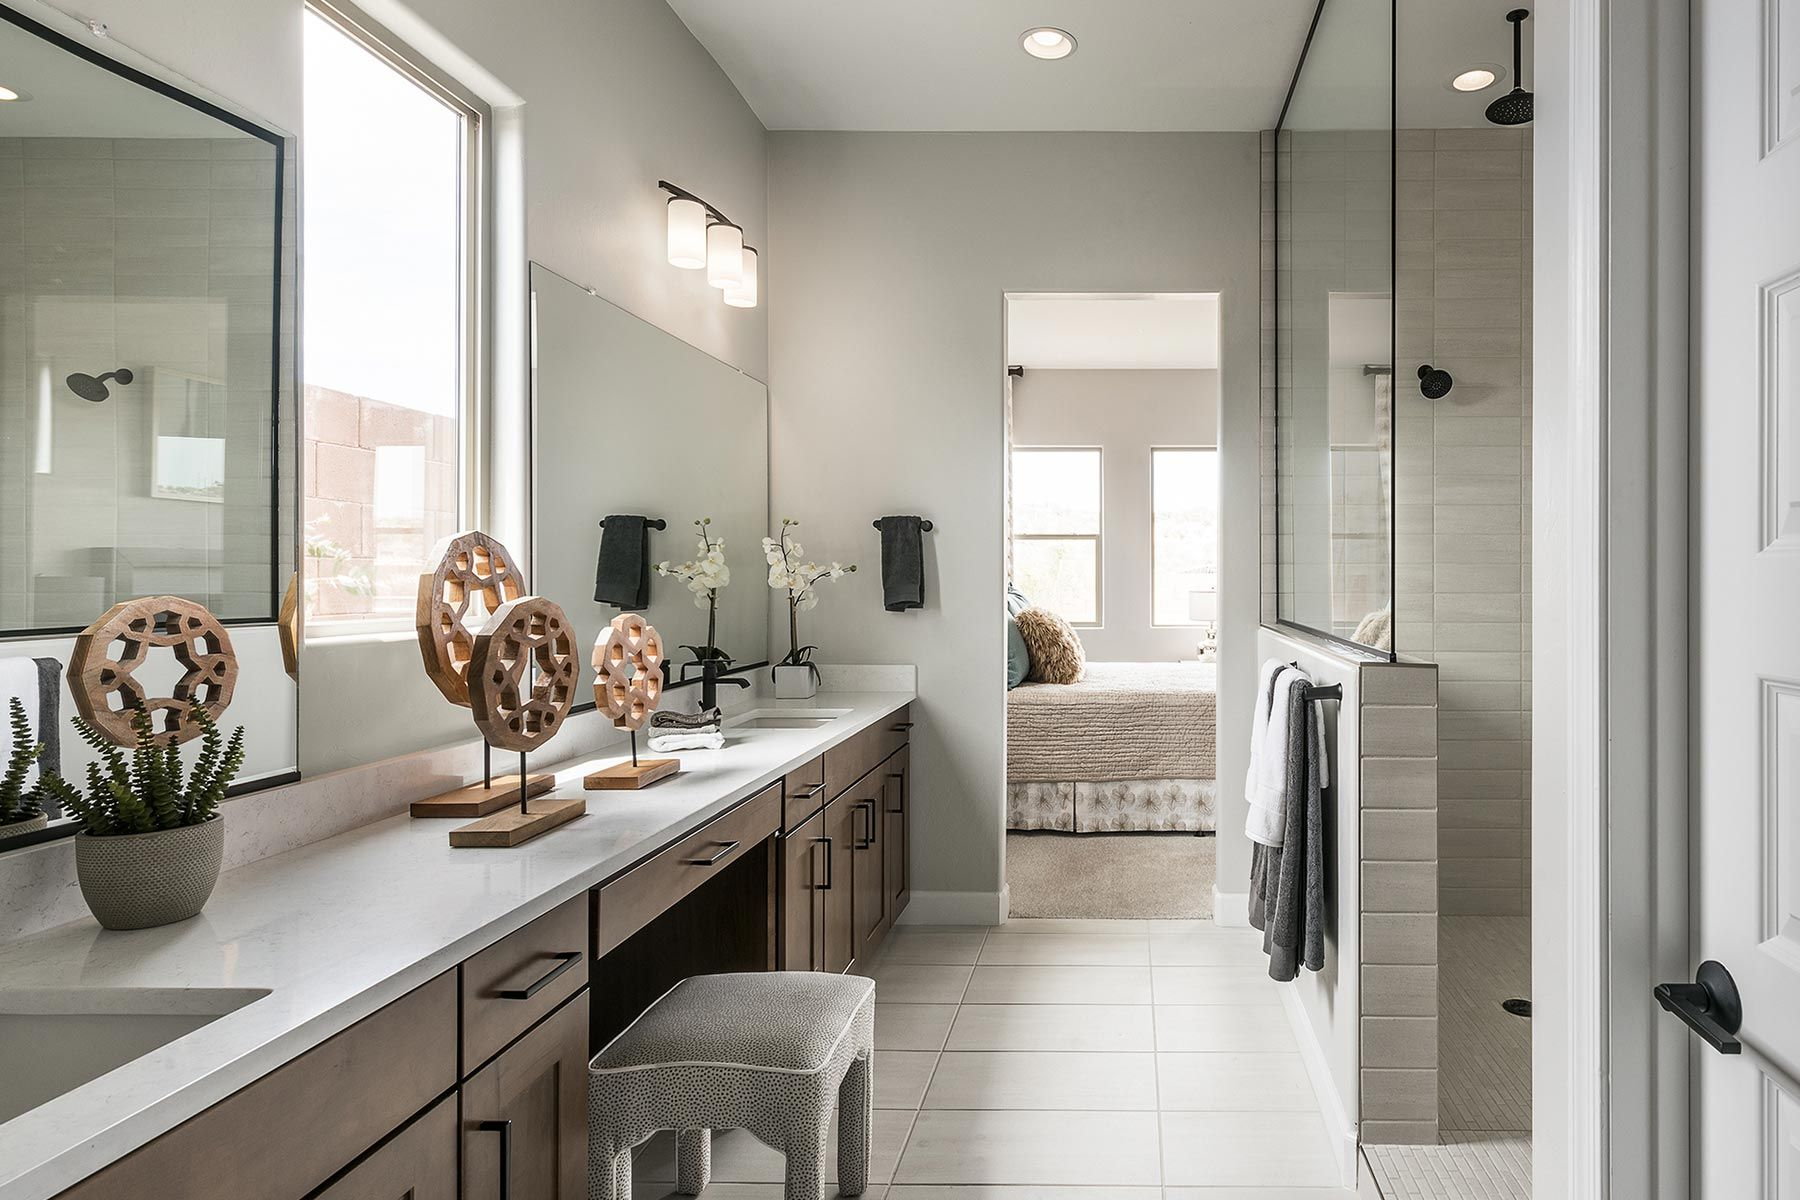 Bathroom featured in the Patina By Mattamy Homes in Tucson, AZ